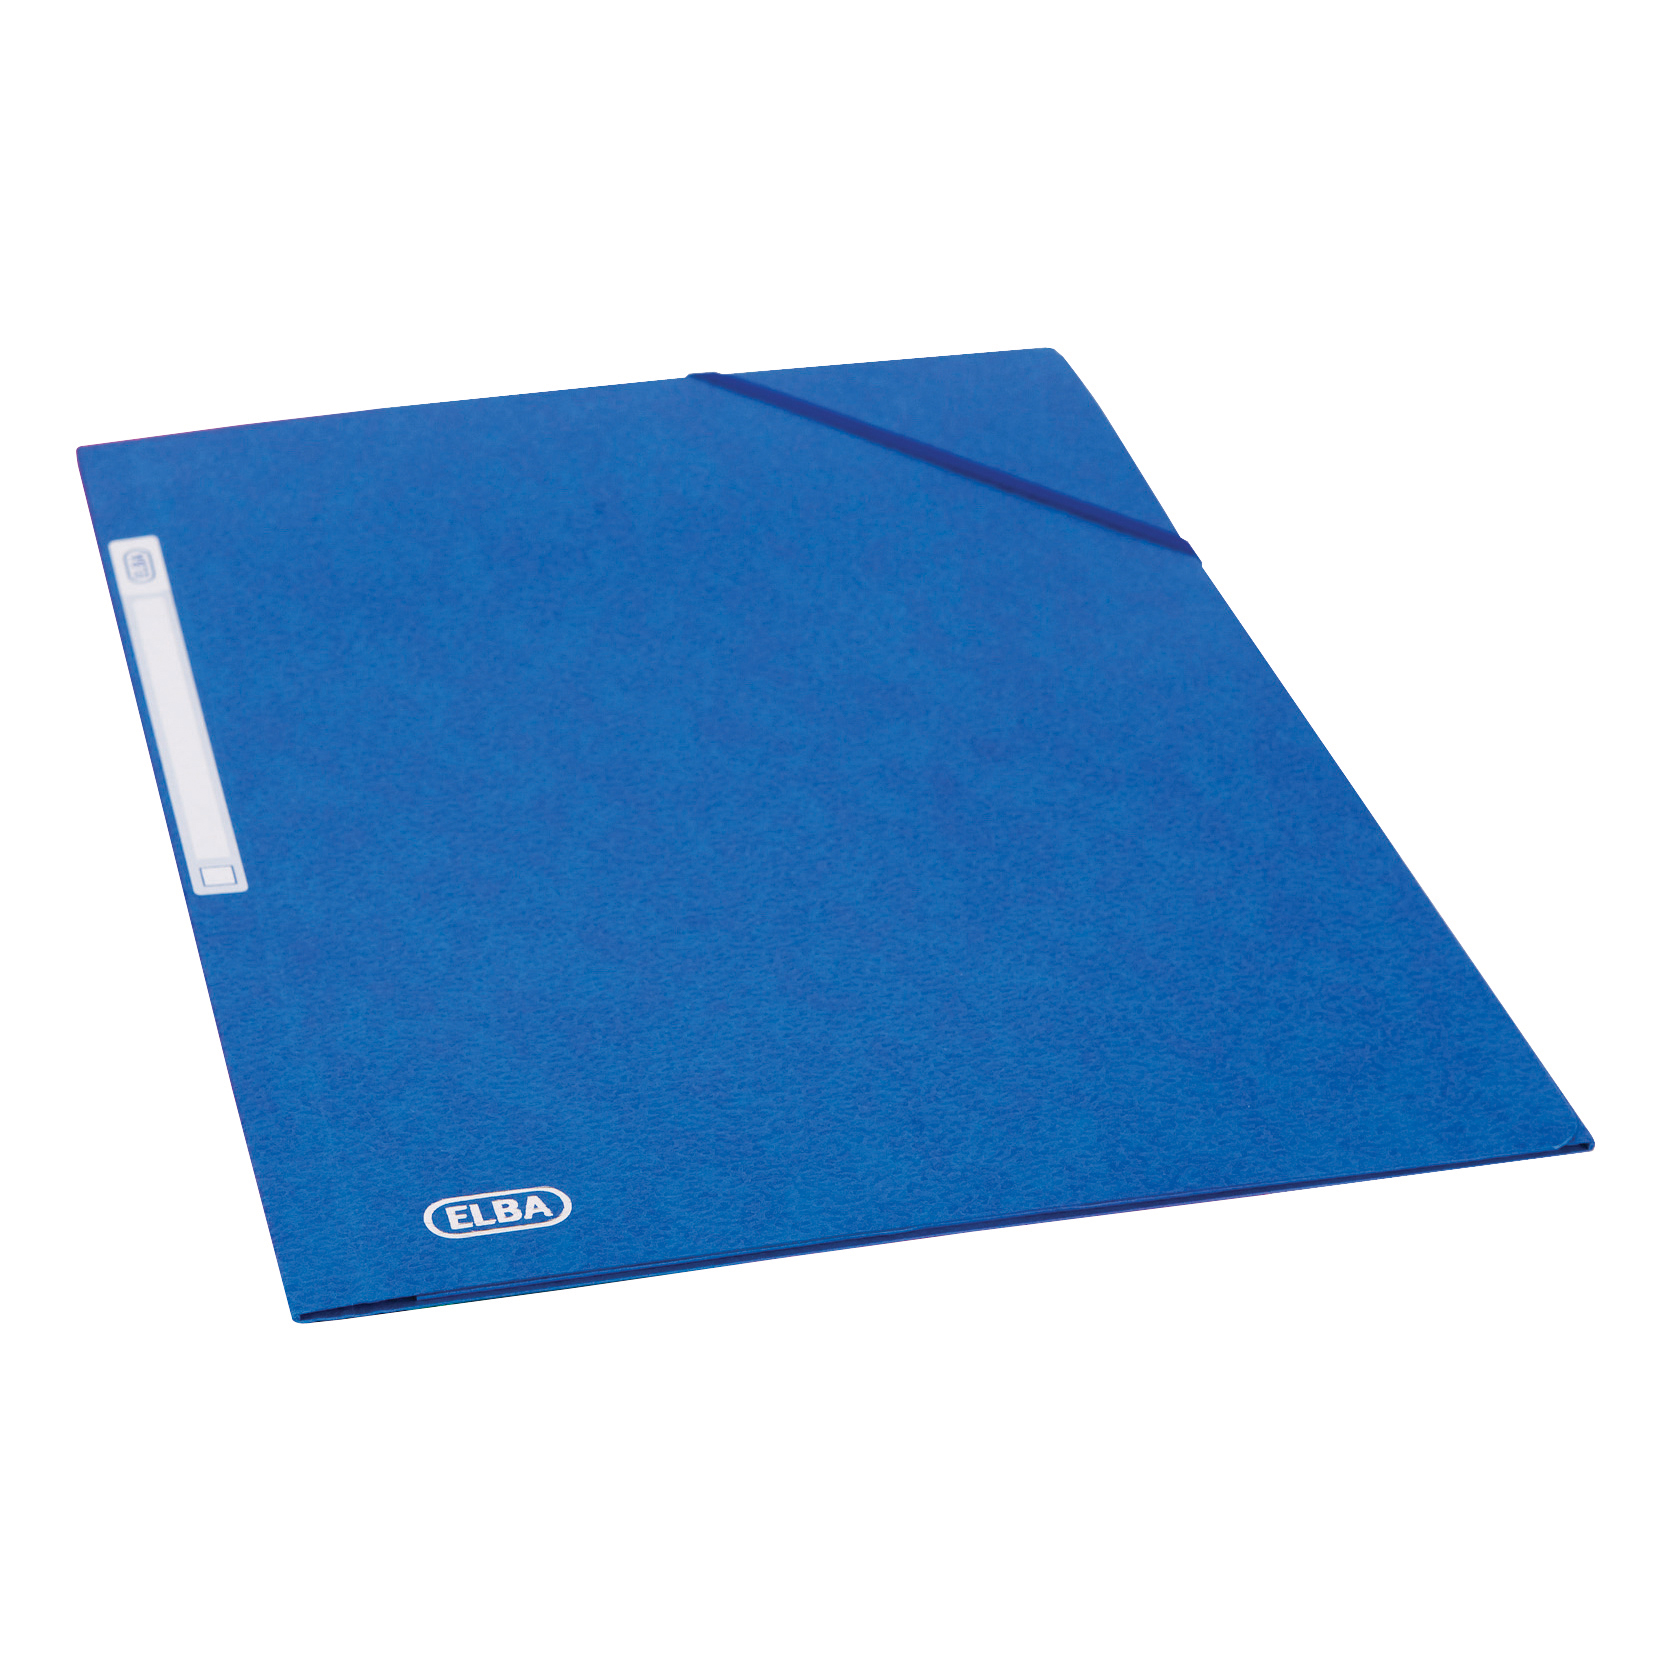 Elba Eurofolio Folder Elasticated 3-Flap 450gsm A4 Blue Ref 100200978 Pack 10